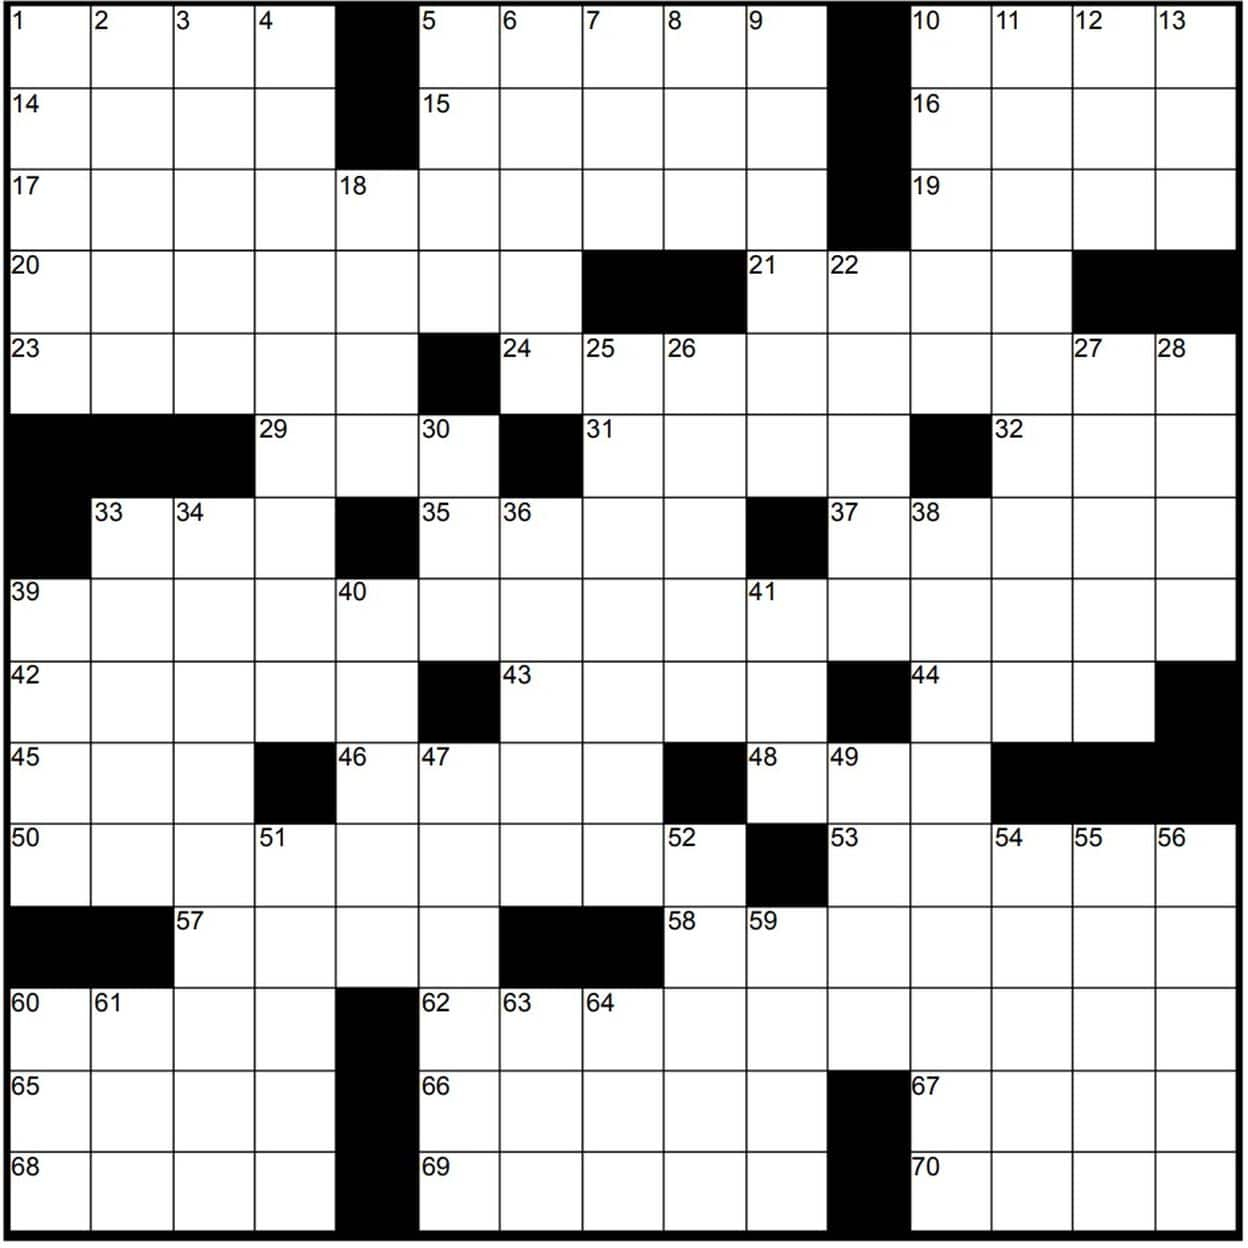 photo regarding Merl Reagle Printable Crossword Puzzles identify Printable Crossword Puzzles Merl Reagle Printable